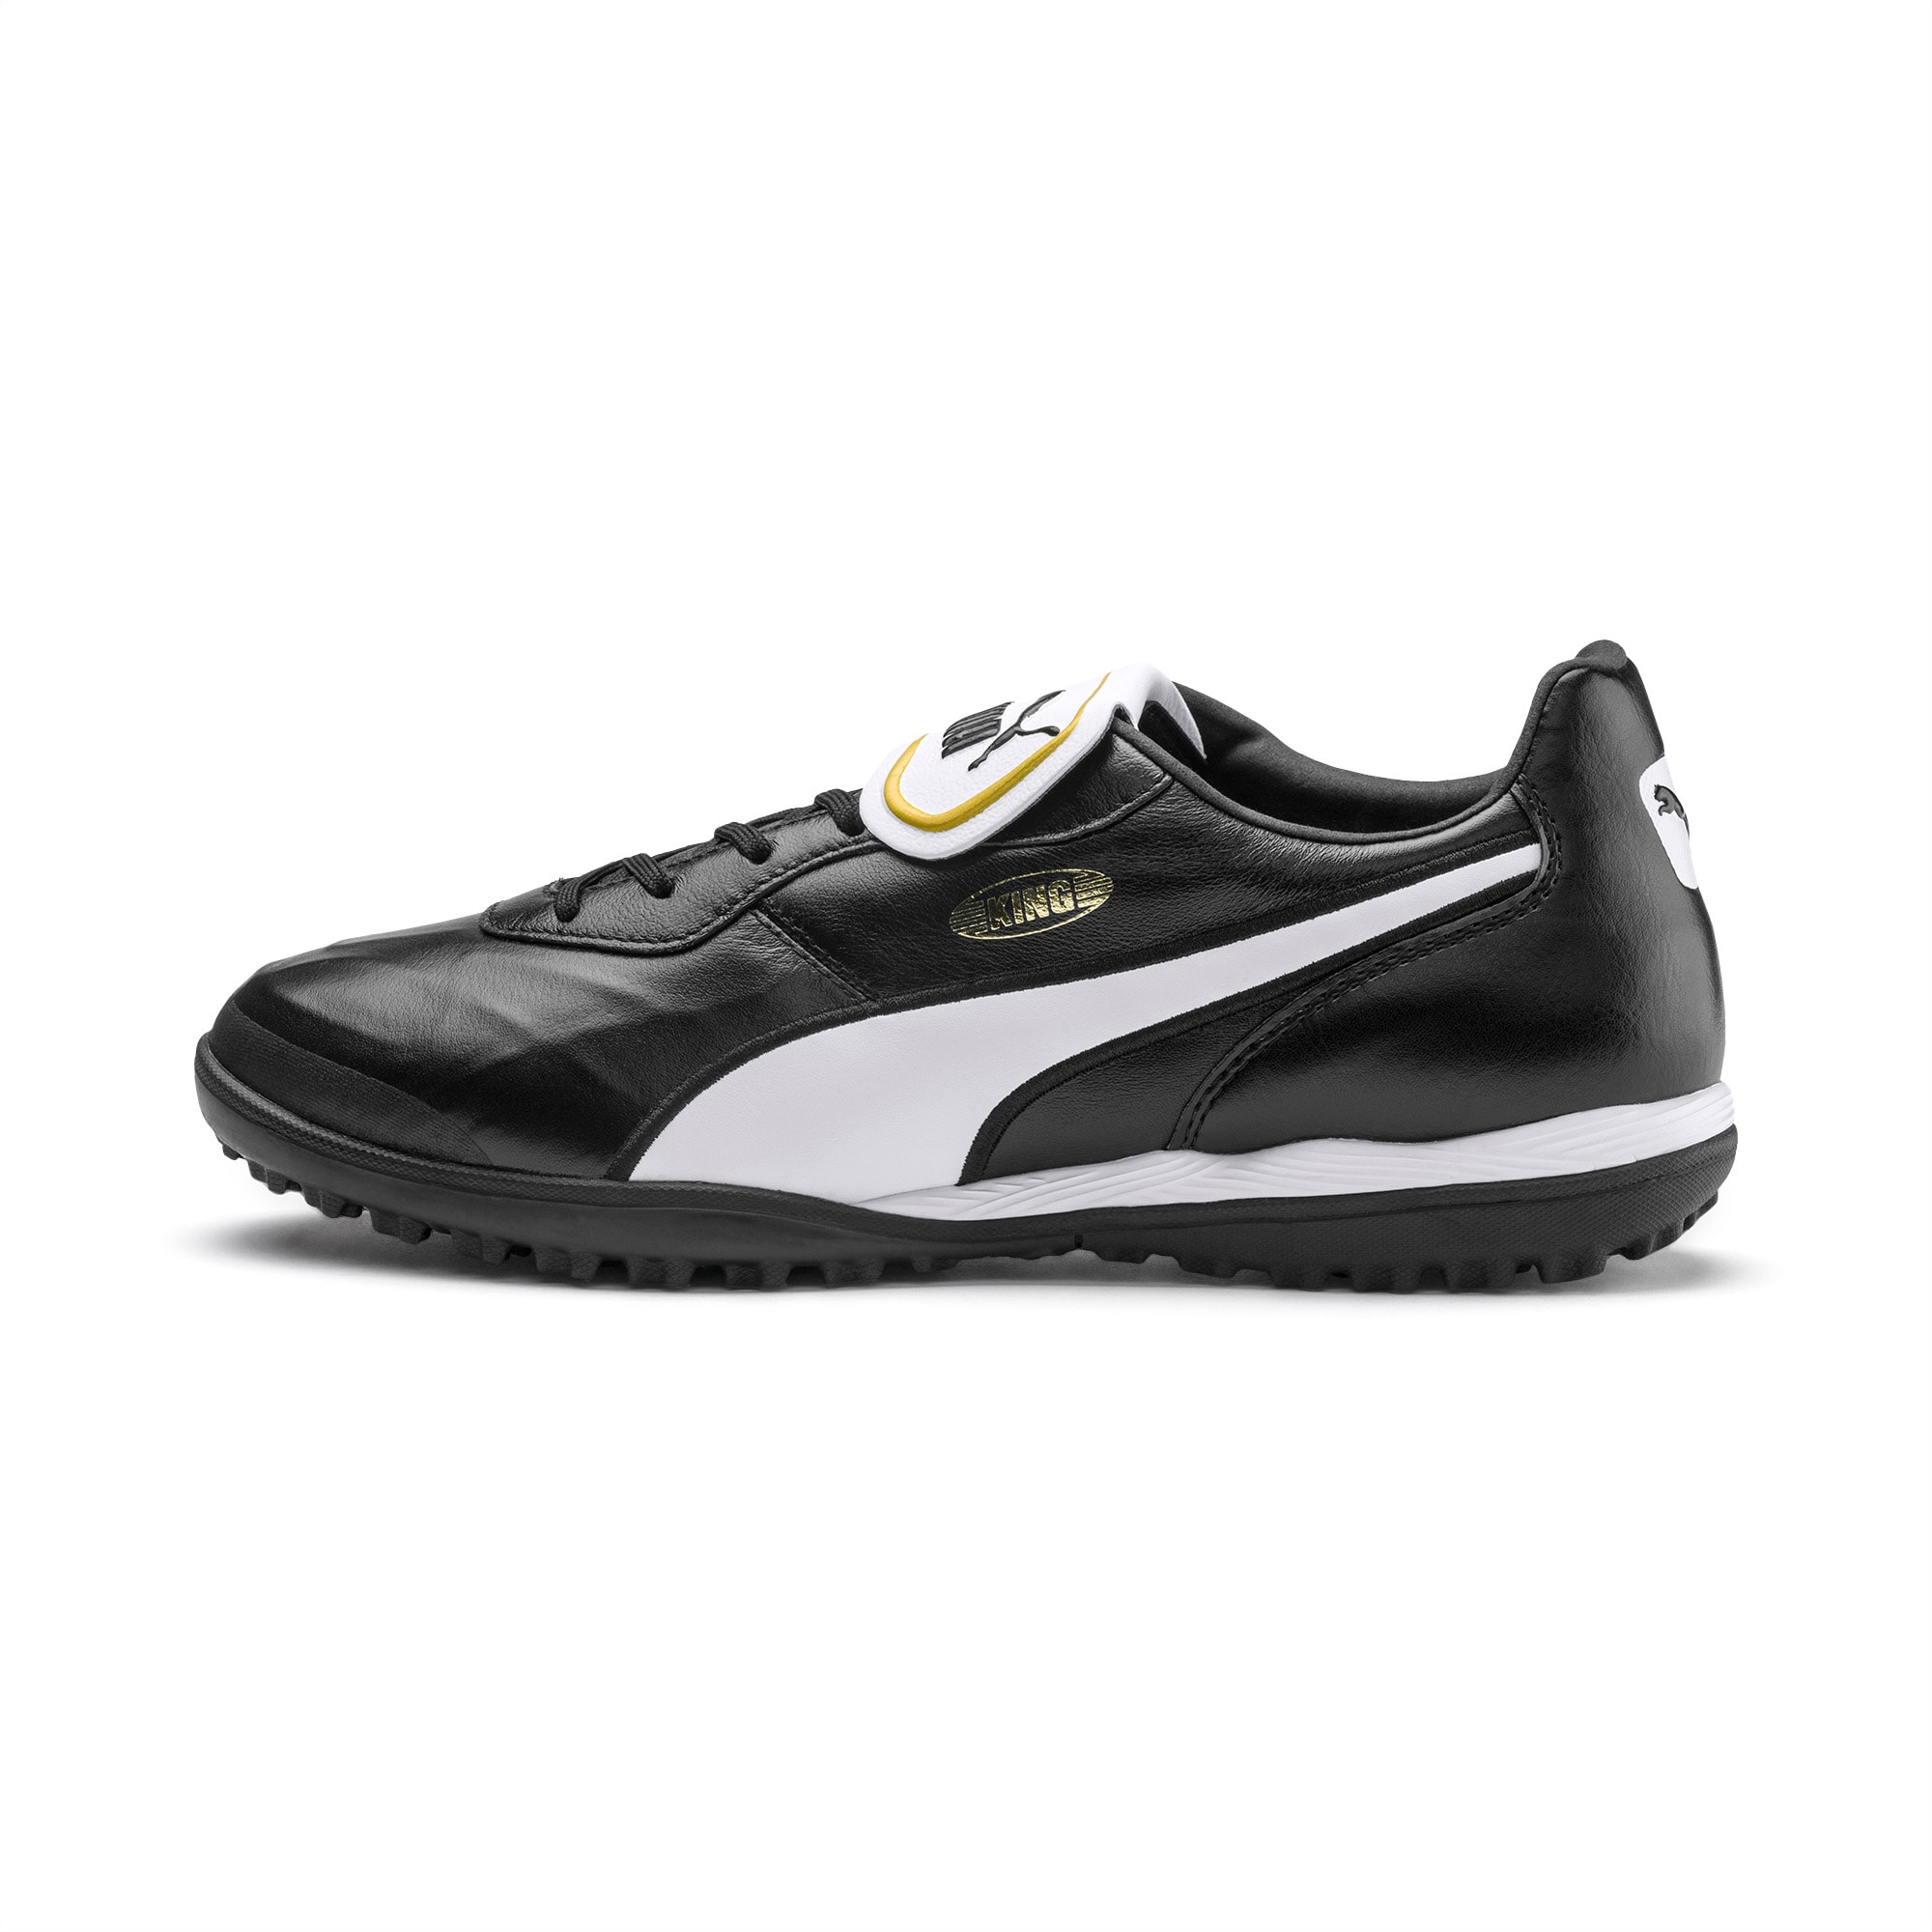 puma king football chaussures homme